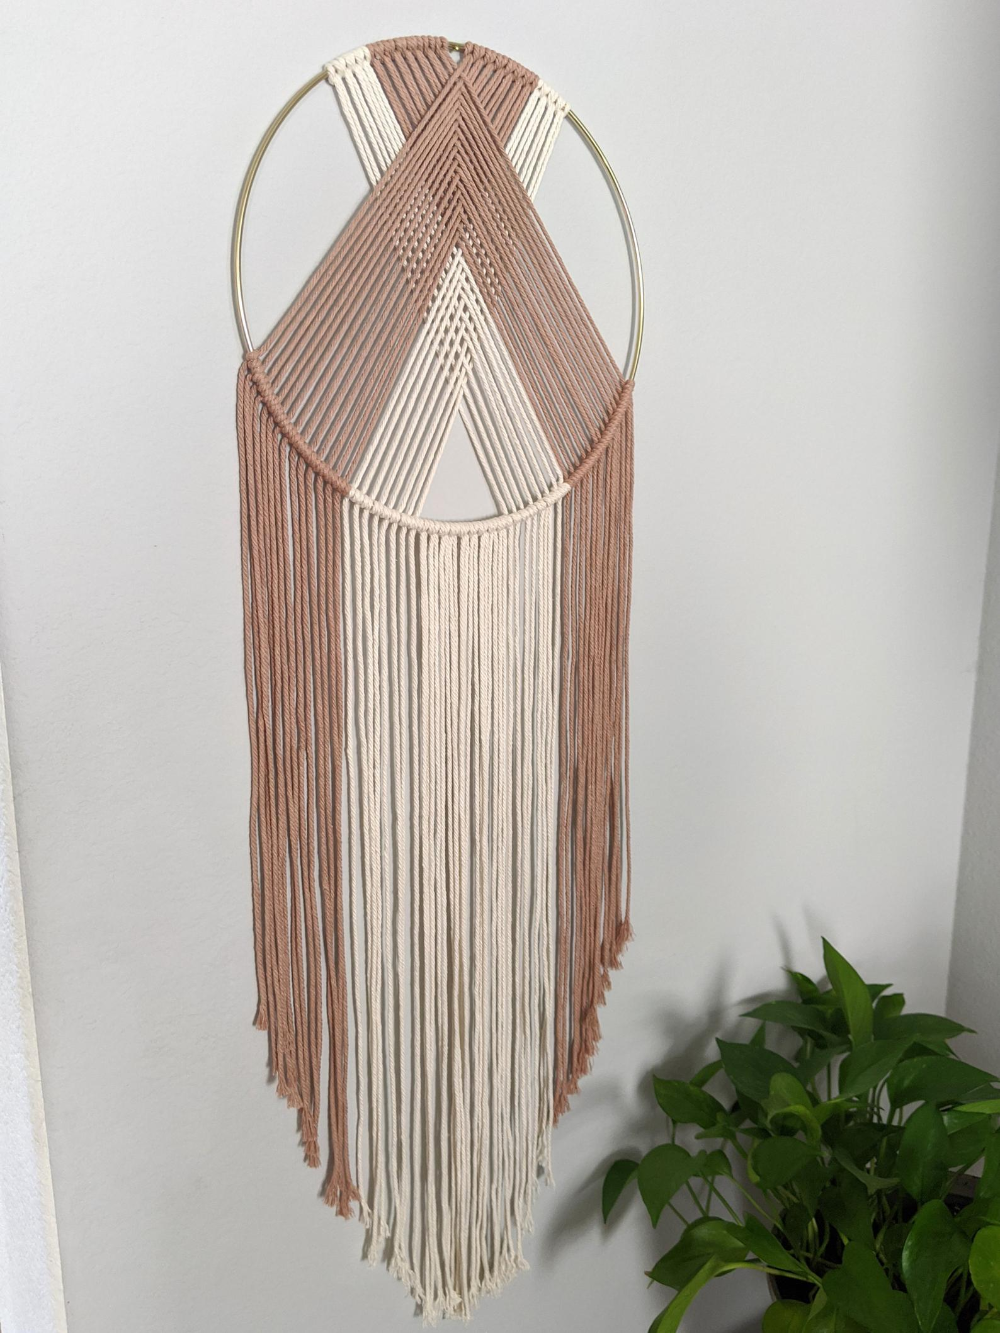 Macrame Wall Hanging Dream Catcher Using Two Colors Modern Boho